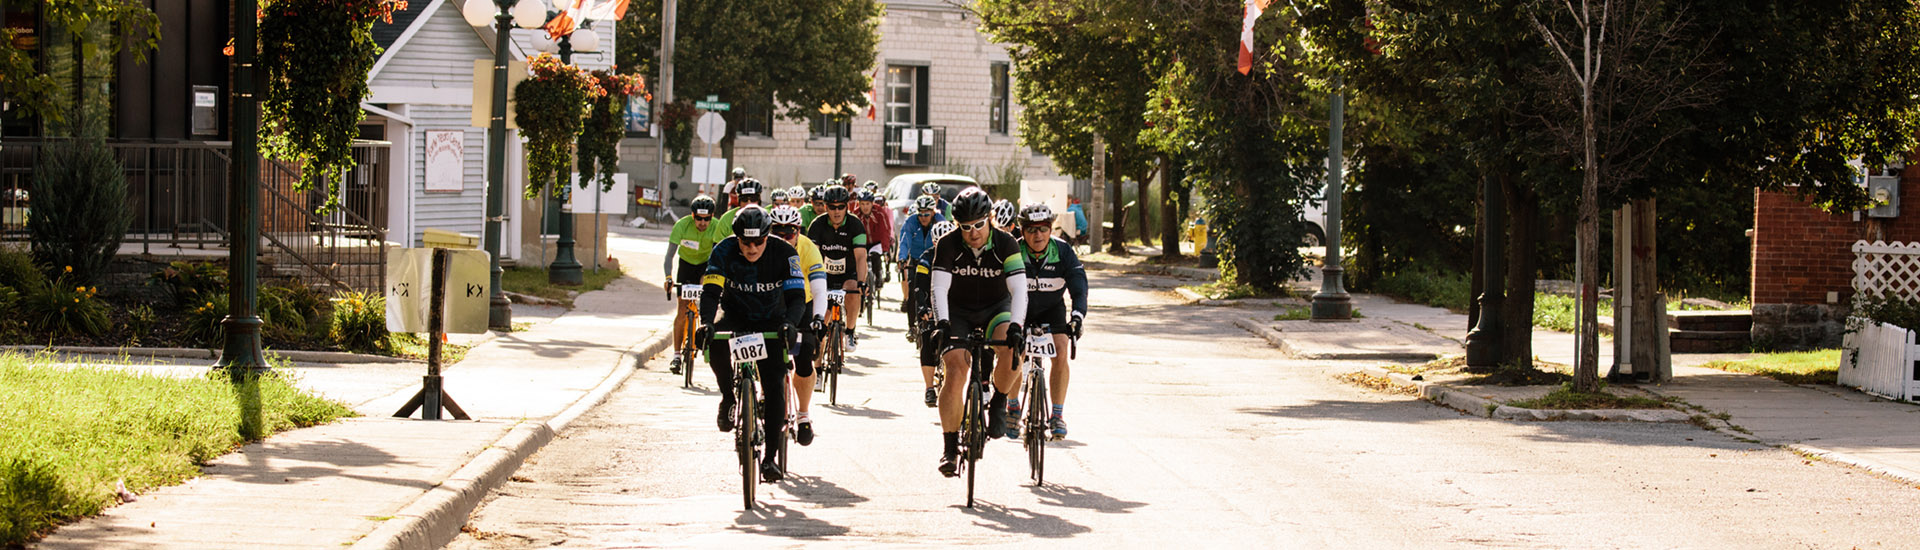 The Ride participants